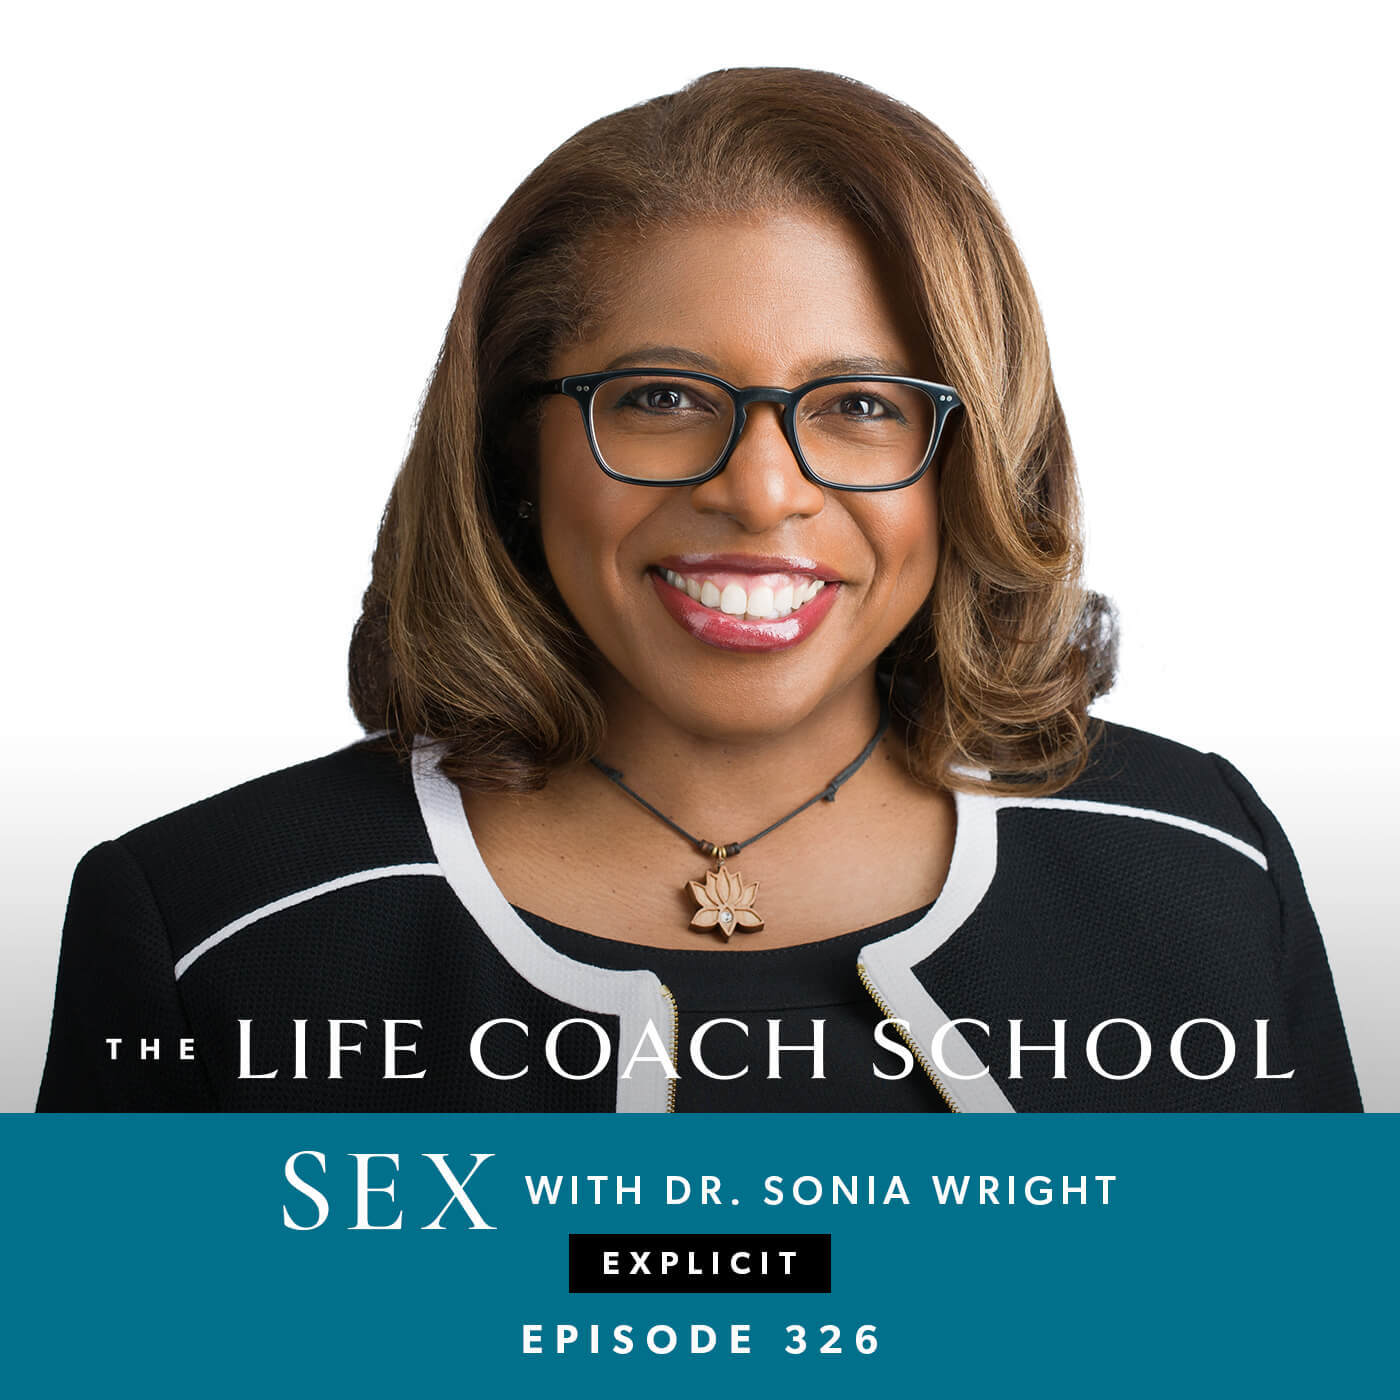 The Life Coach School Podcast with Brooke Castillo | Episode 326 | SEX with Dr. Sonia Wright